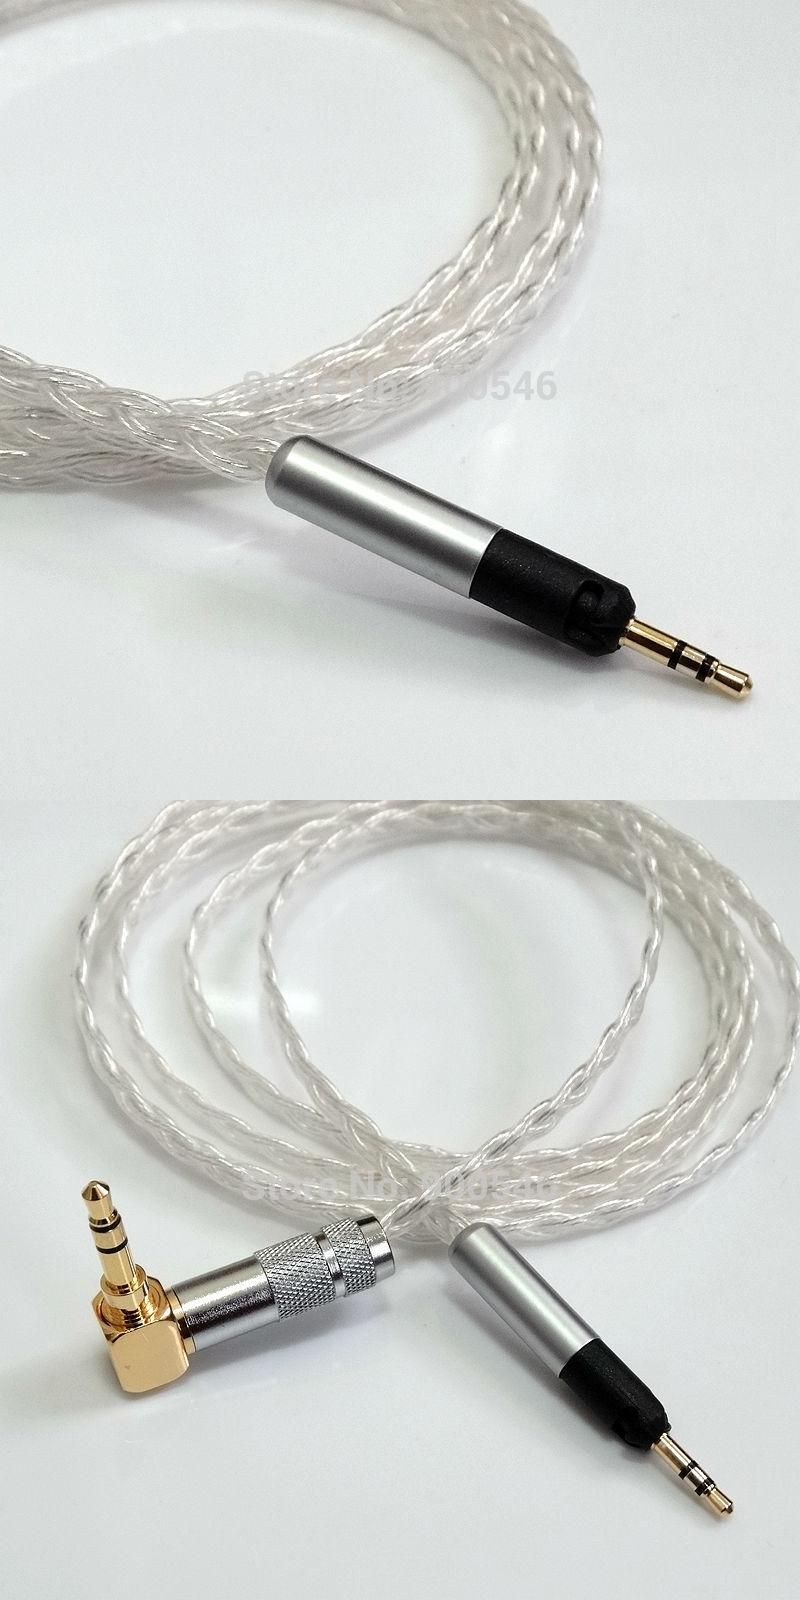 1.5m 5ft L -type plug 6core 4N OCC Silver plated Headphone Cable ...